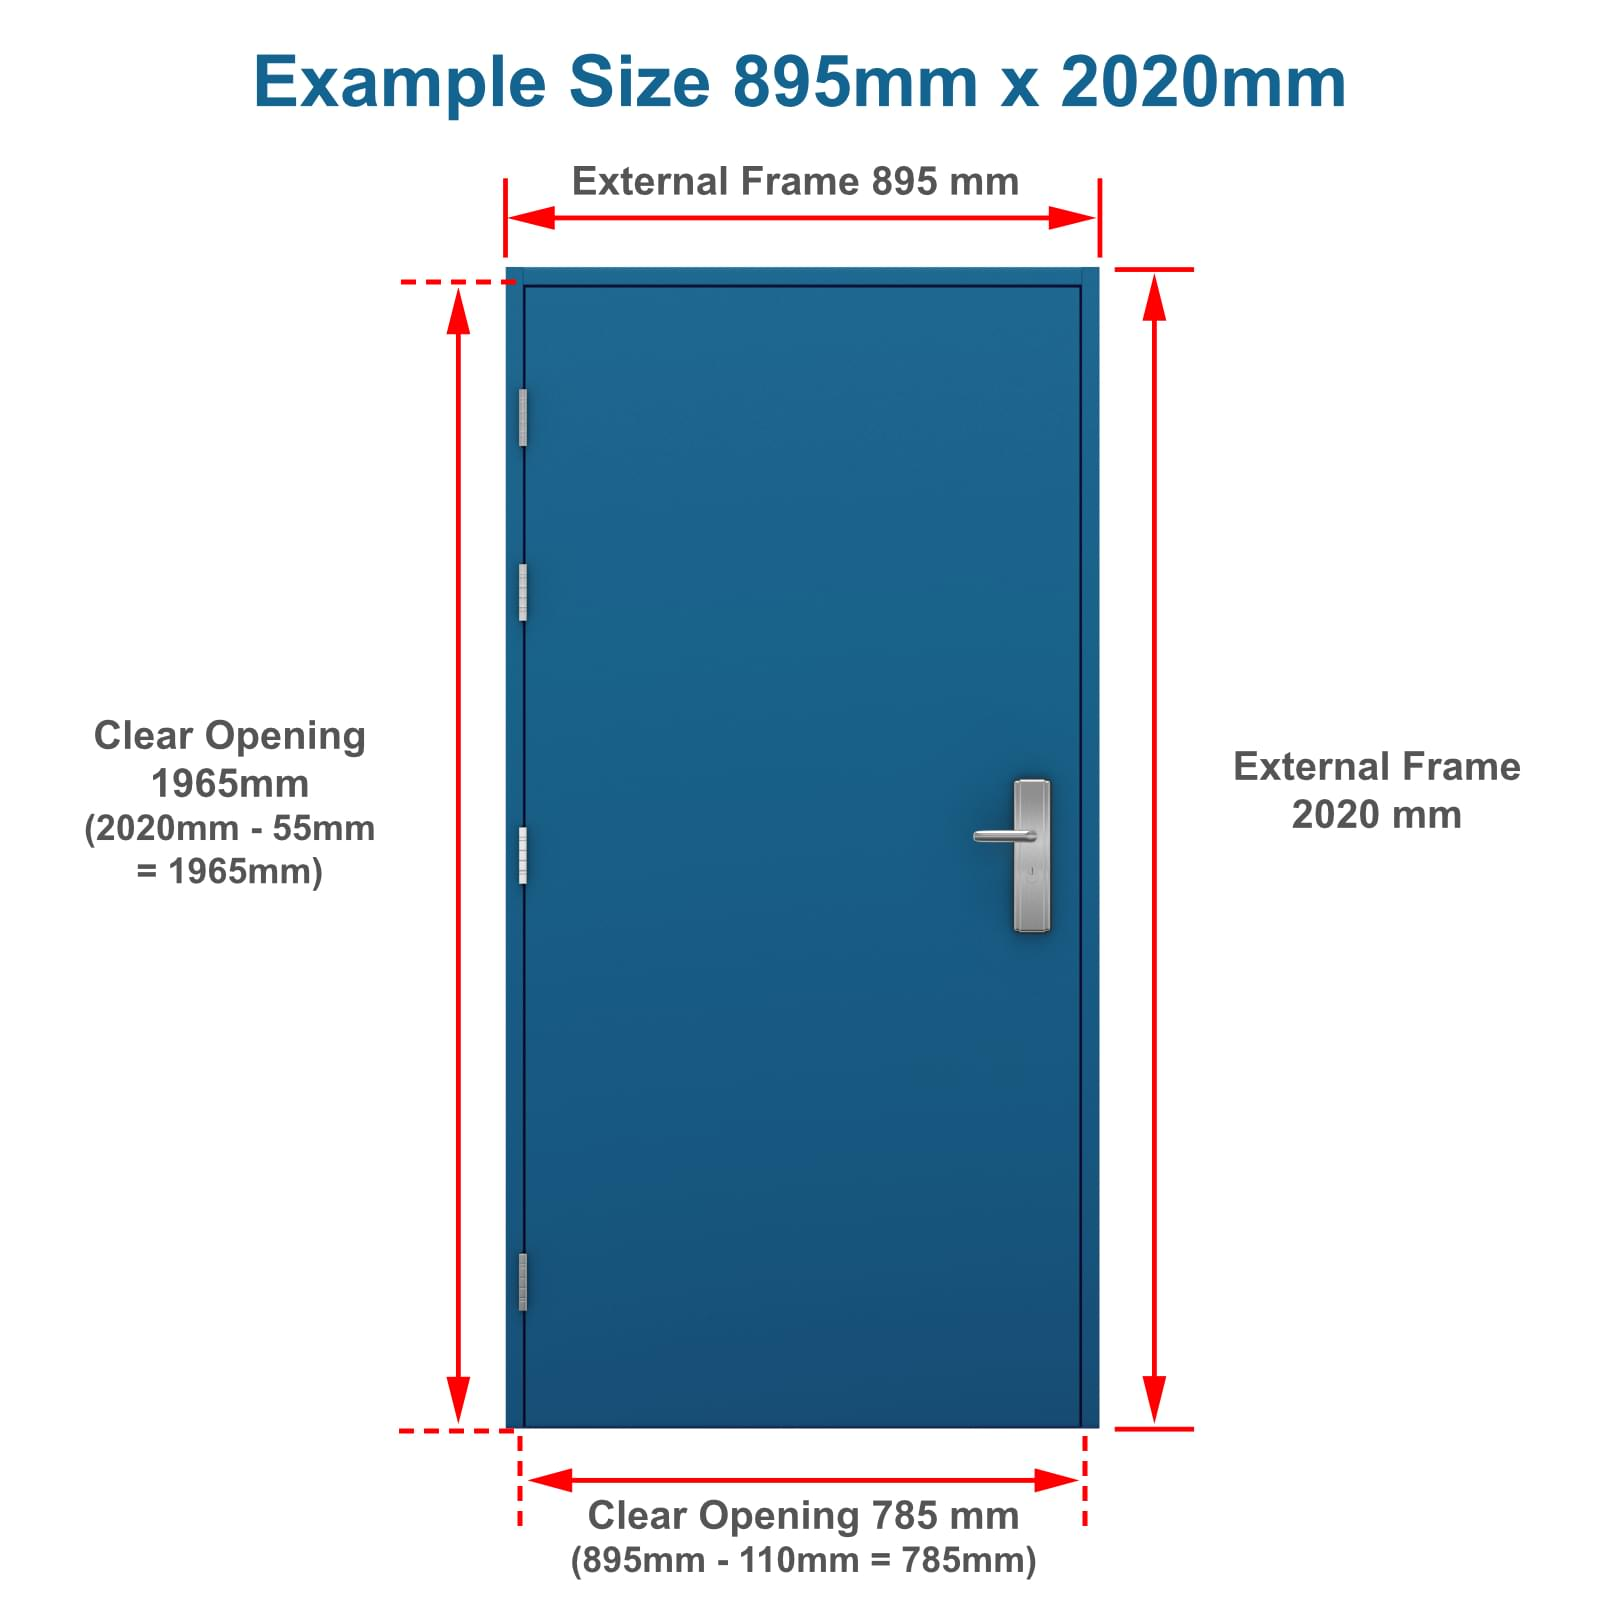 Are your sizes the door size or the overall frame size?